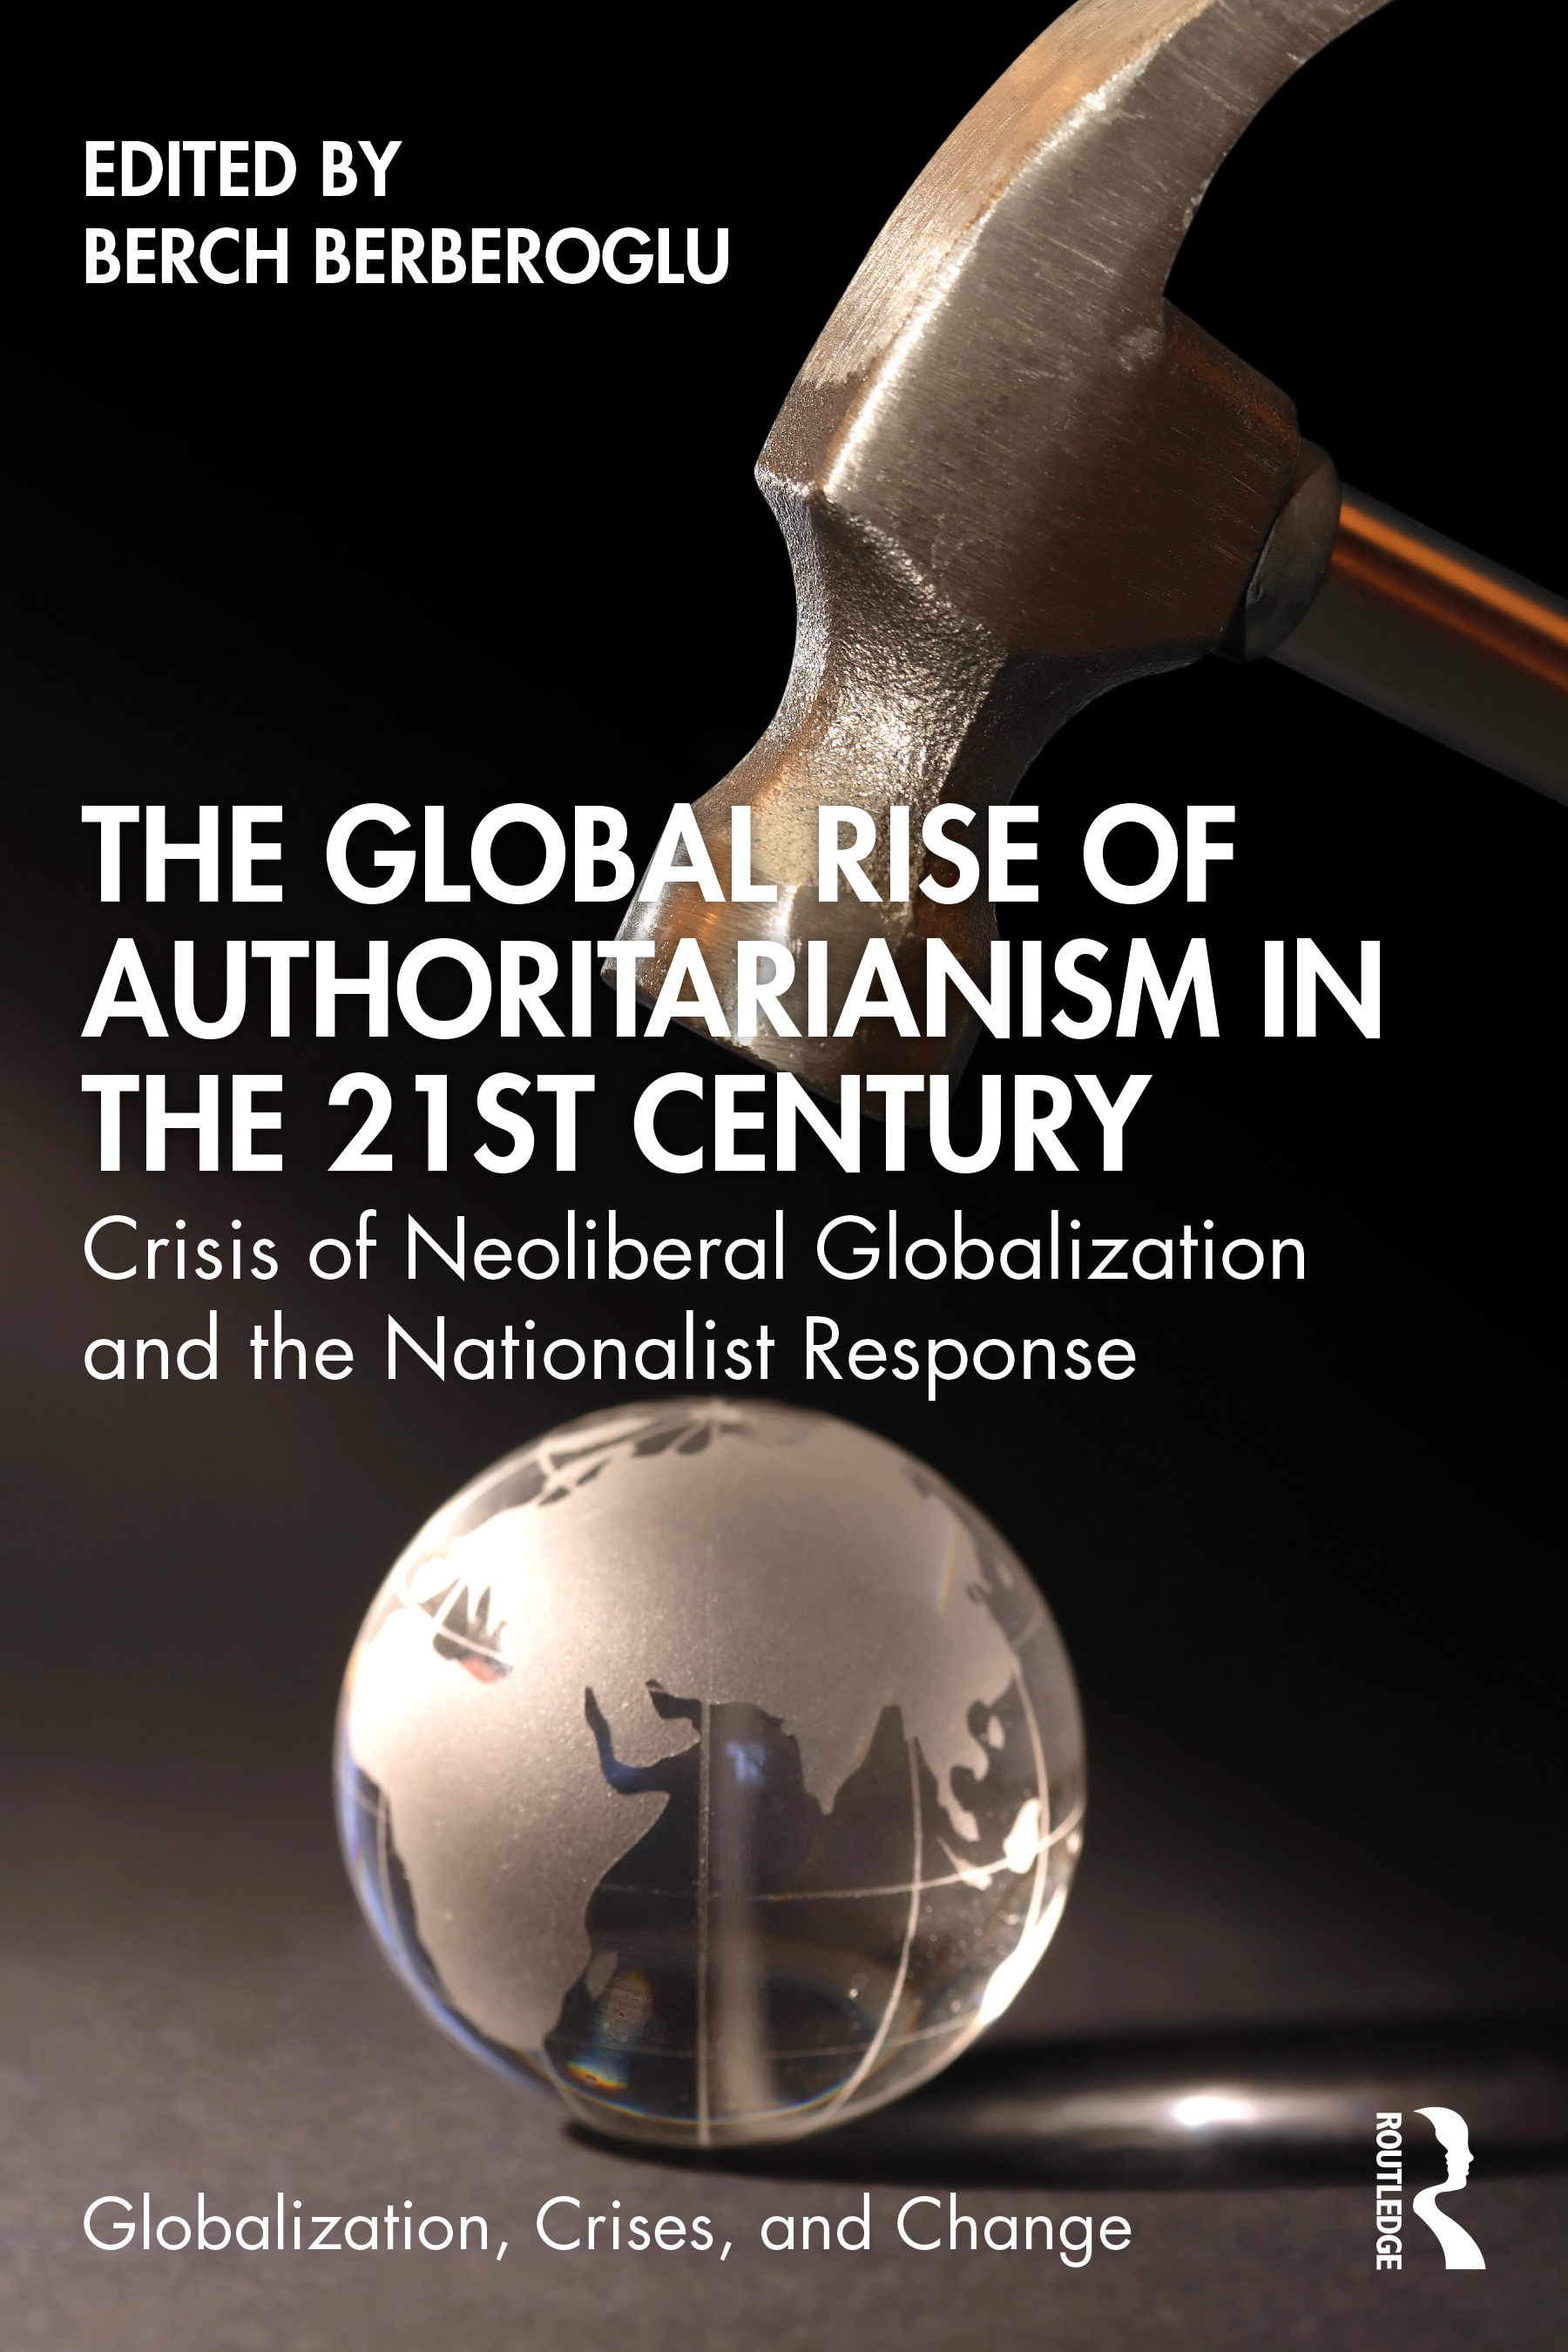 The Global Rise of Authoritarianism in the 21st Century: Crisis of Neoliberal Globalization and the Nationalist Response book cover